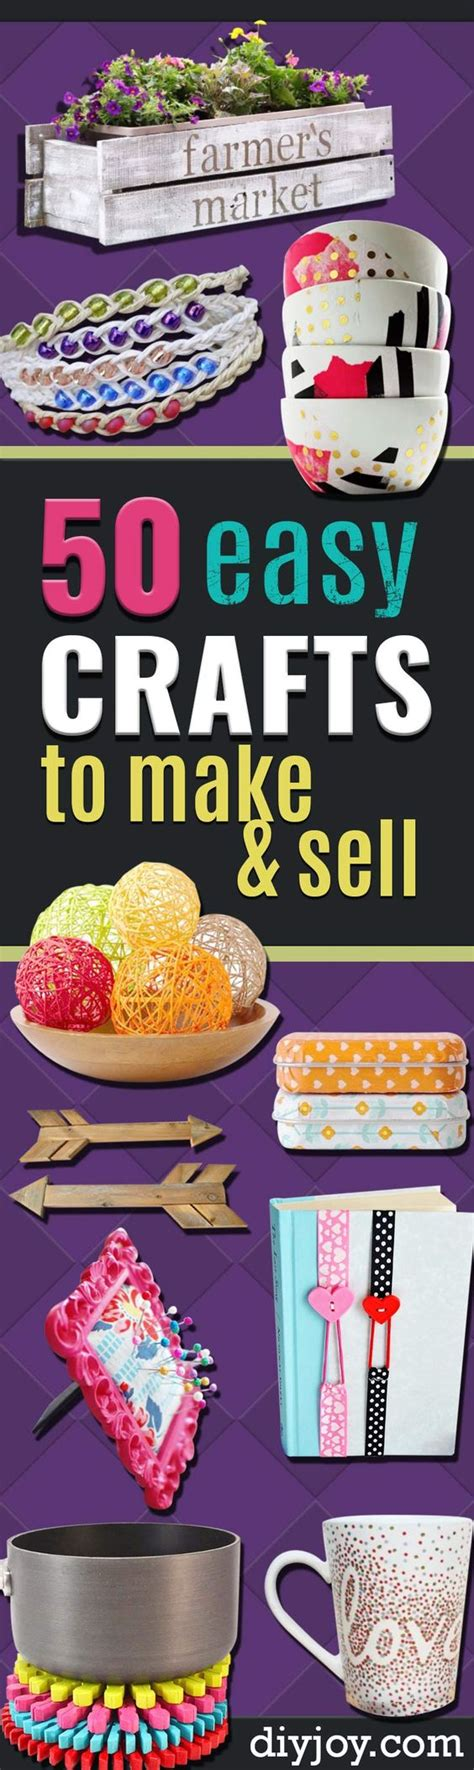 easy craft projects to sell 50 easy crafts to make and sell make and sell